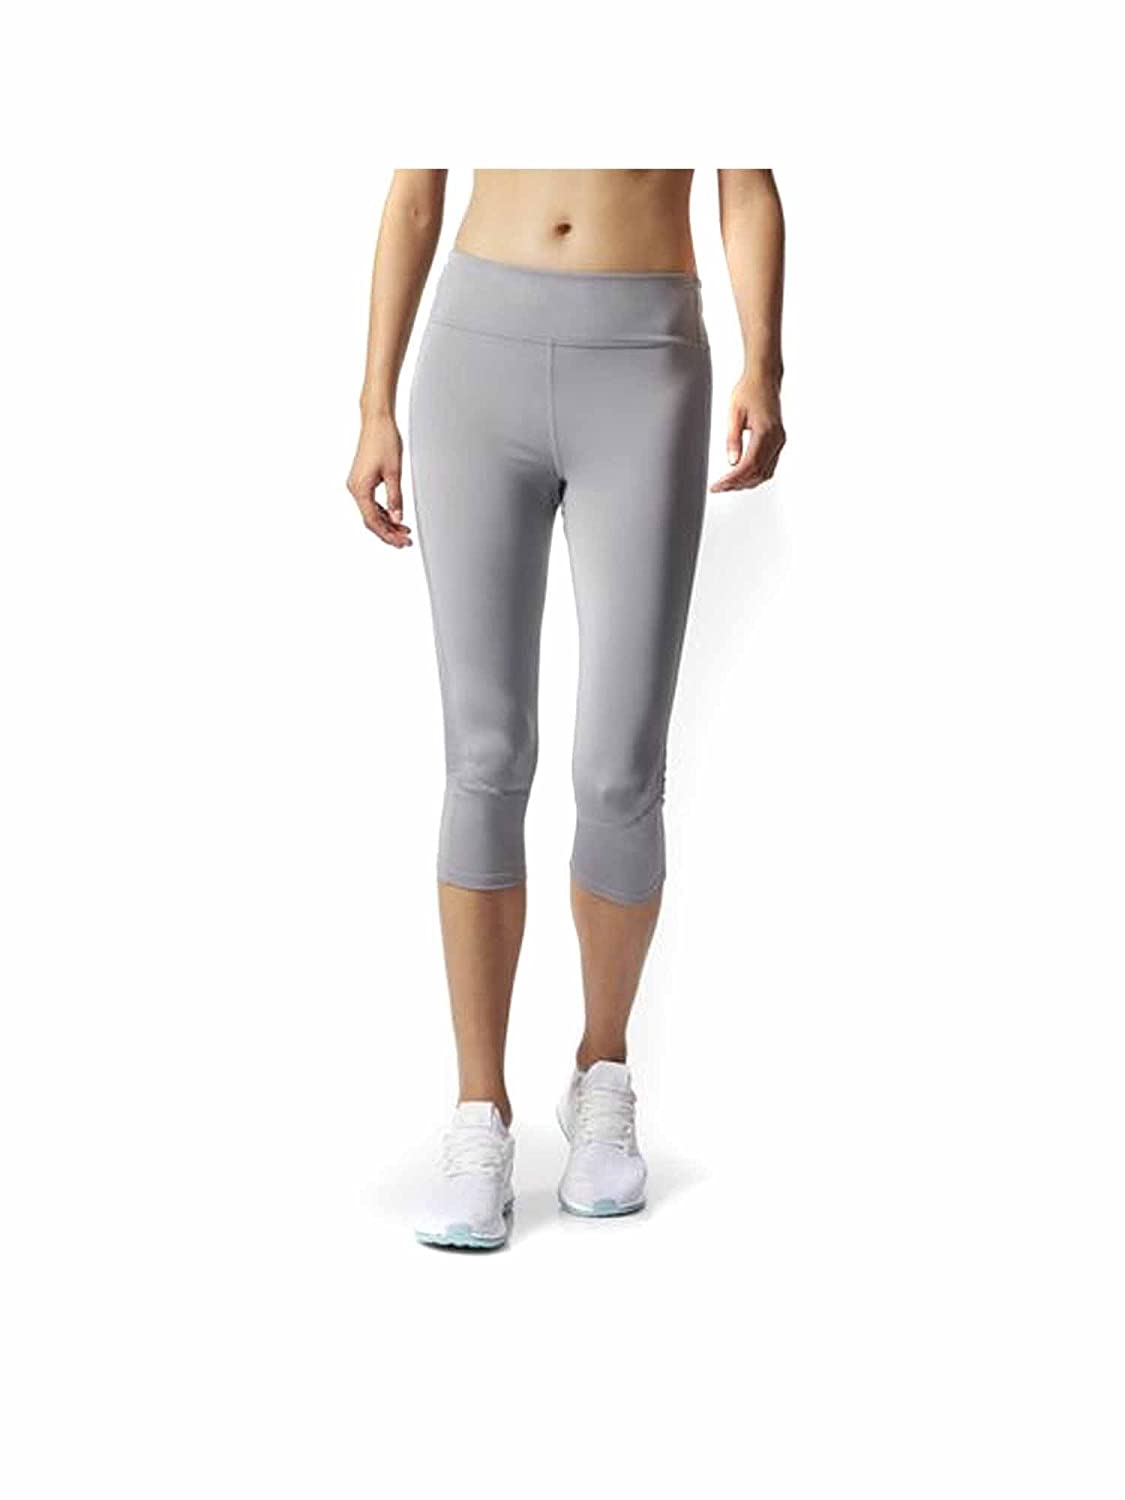 a75c753c2bc49 Top 10 wholesale Adidas 3 Quarter Leggings - Chinabrands.com